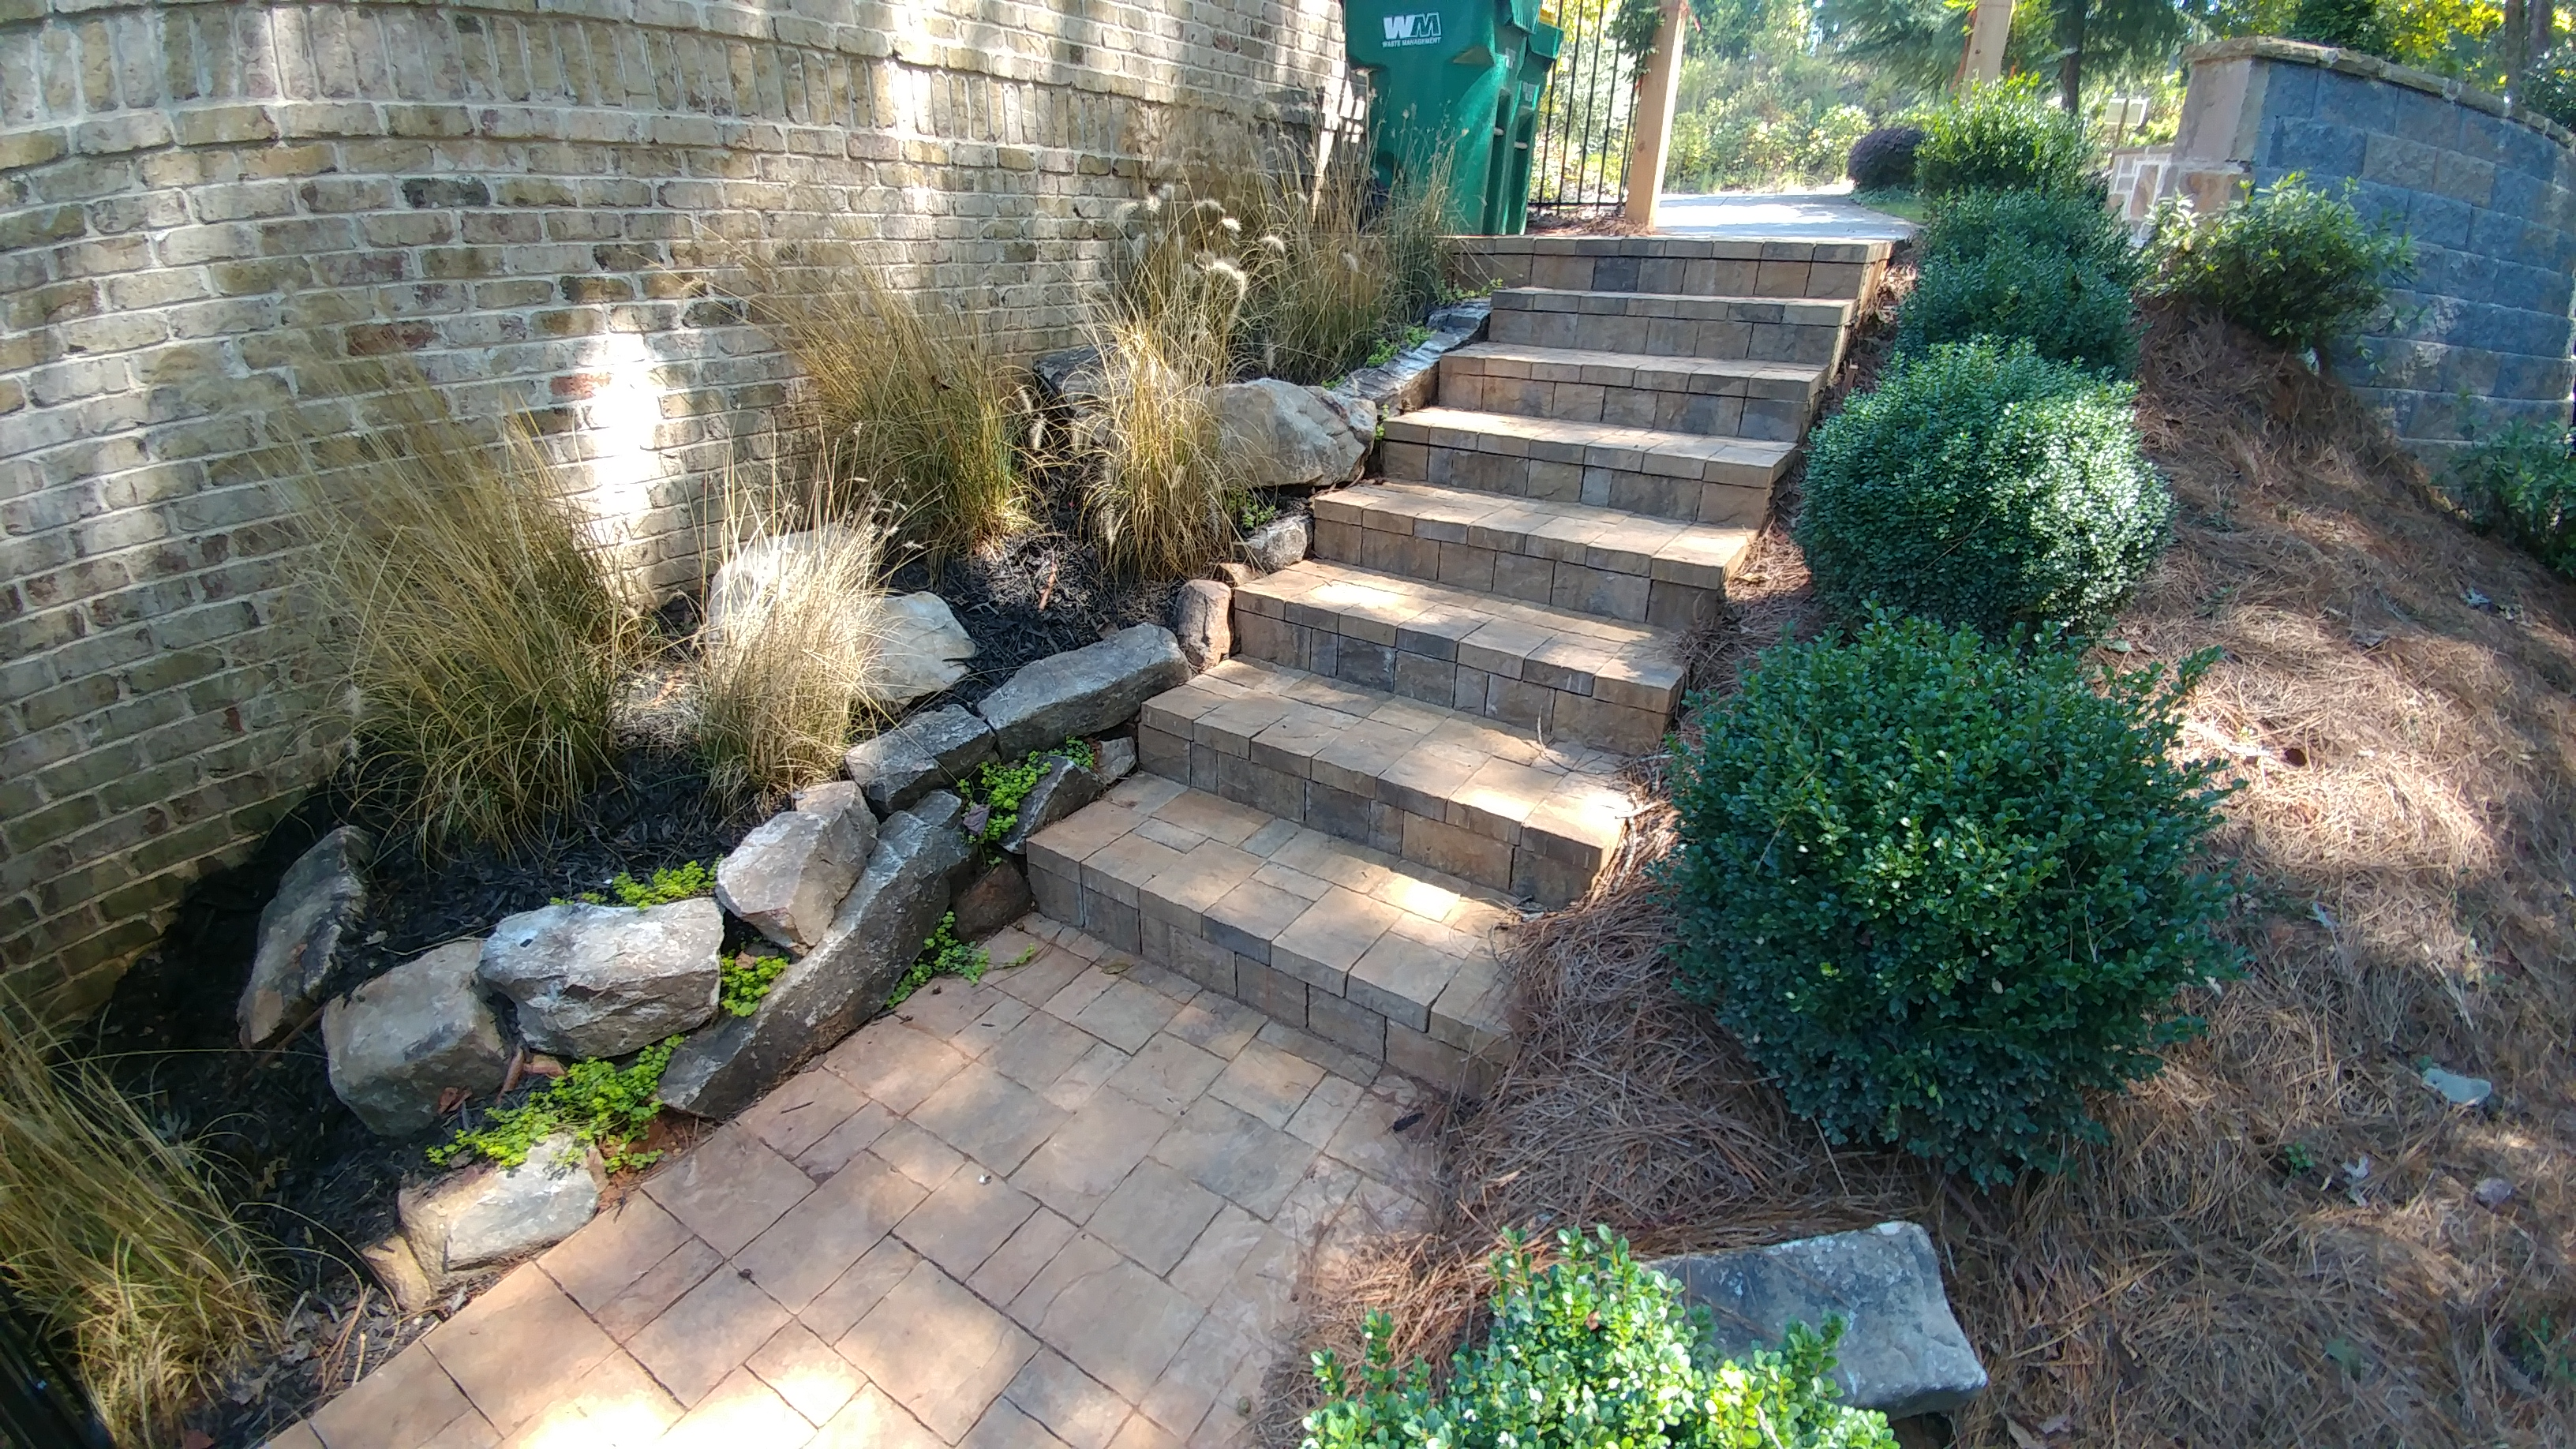 A set of stairs is made of carefully laid brick with tufts of well-manicured grasses lining the side.